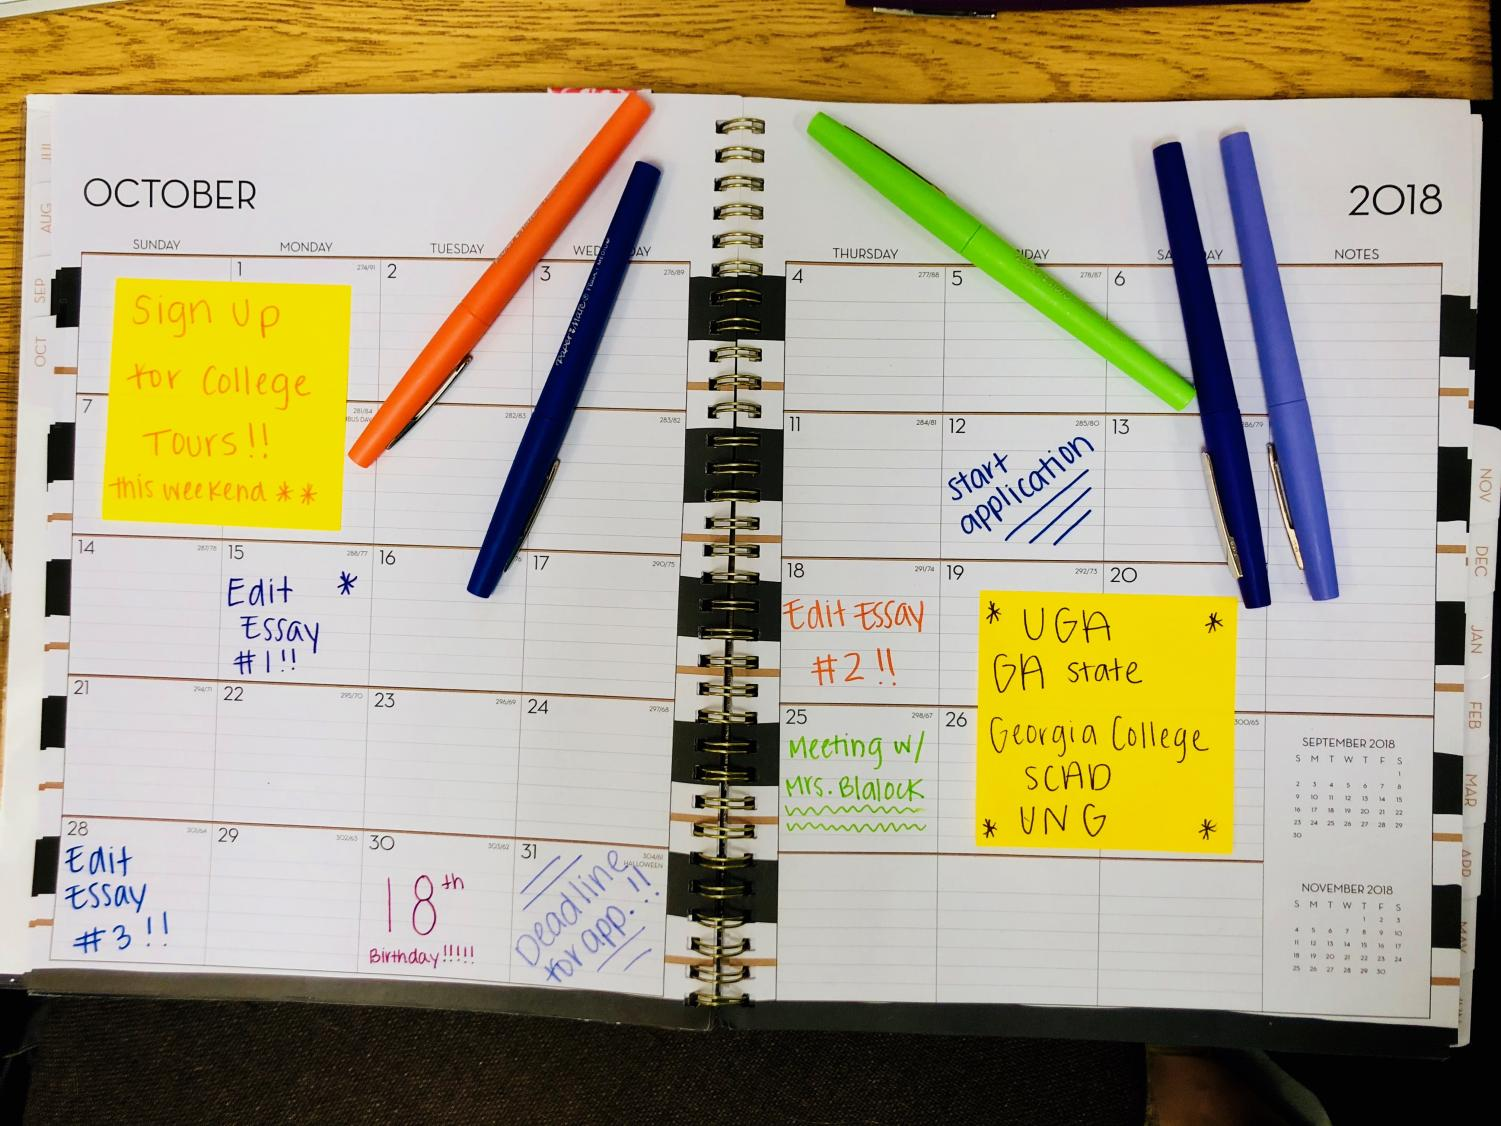 College commonly stresses students out, but they can avoid overwhelming themselves by keeping up with important dates and college information in a calendar or notebook. Students should note which colleges they plan on applying to, as well as events such as counselor meetings and college visits in their planner.